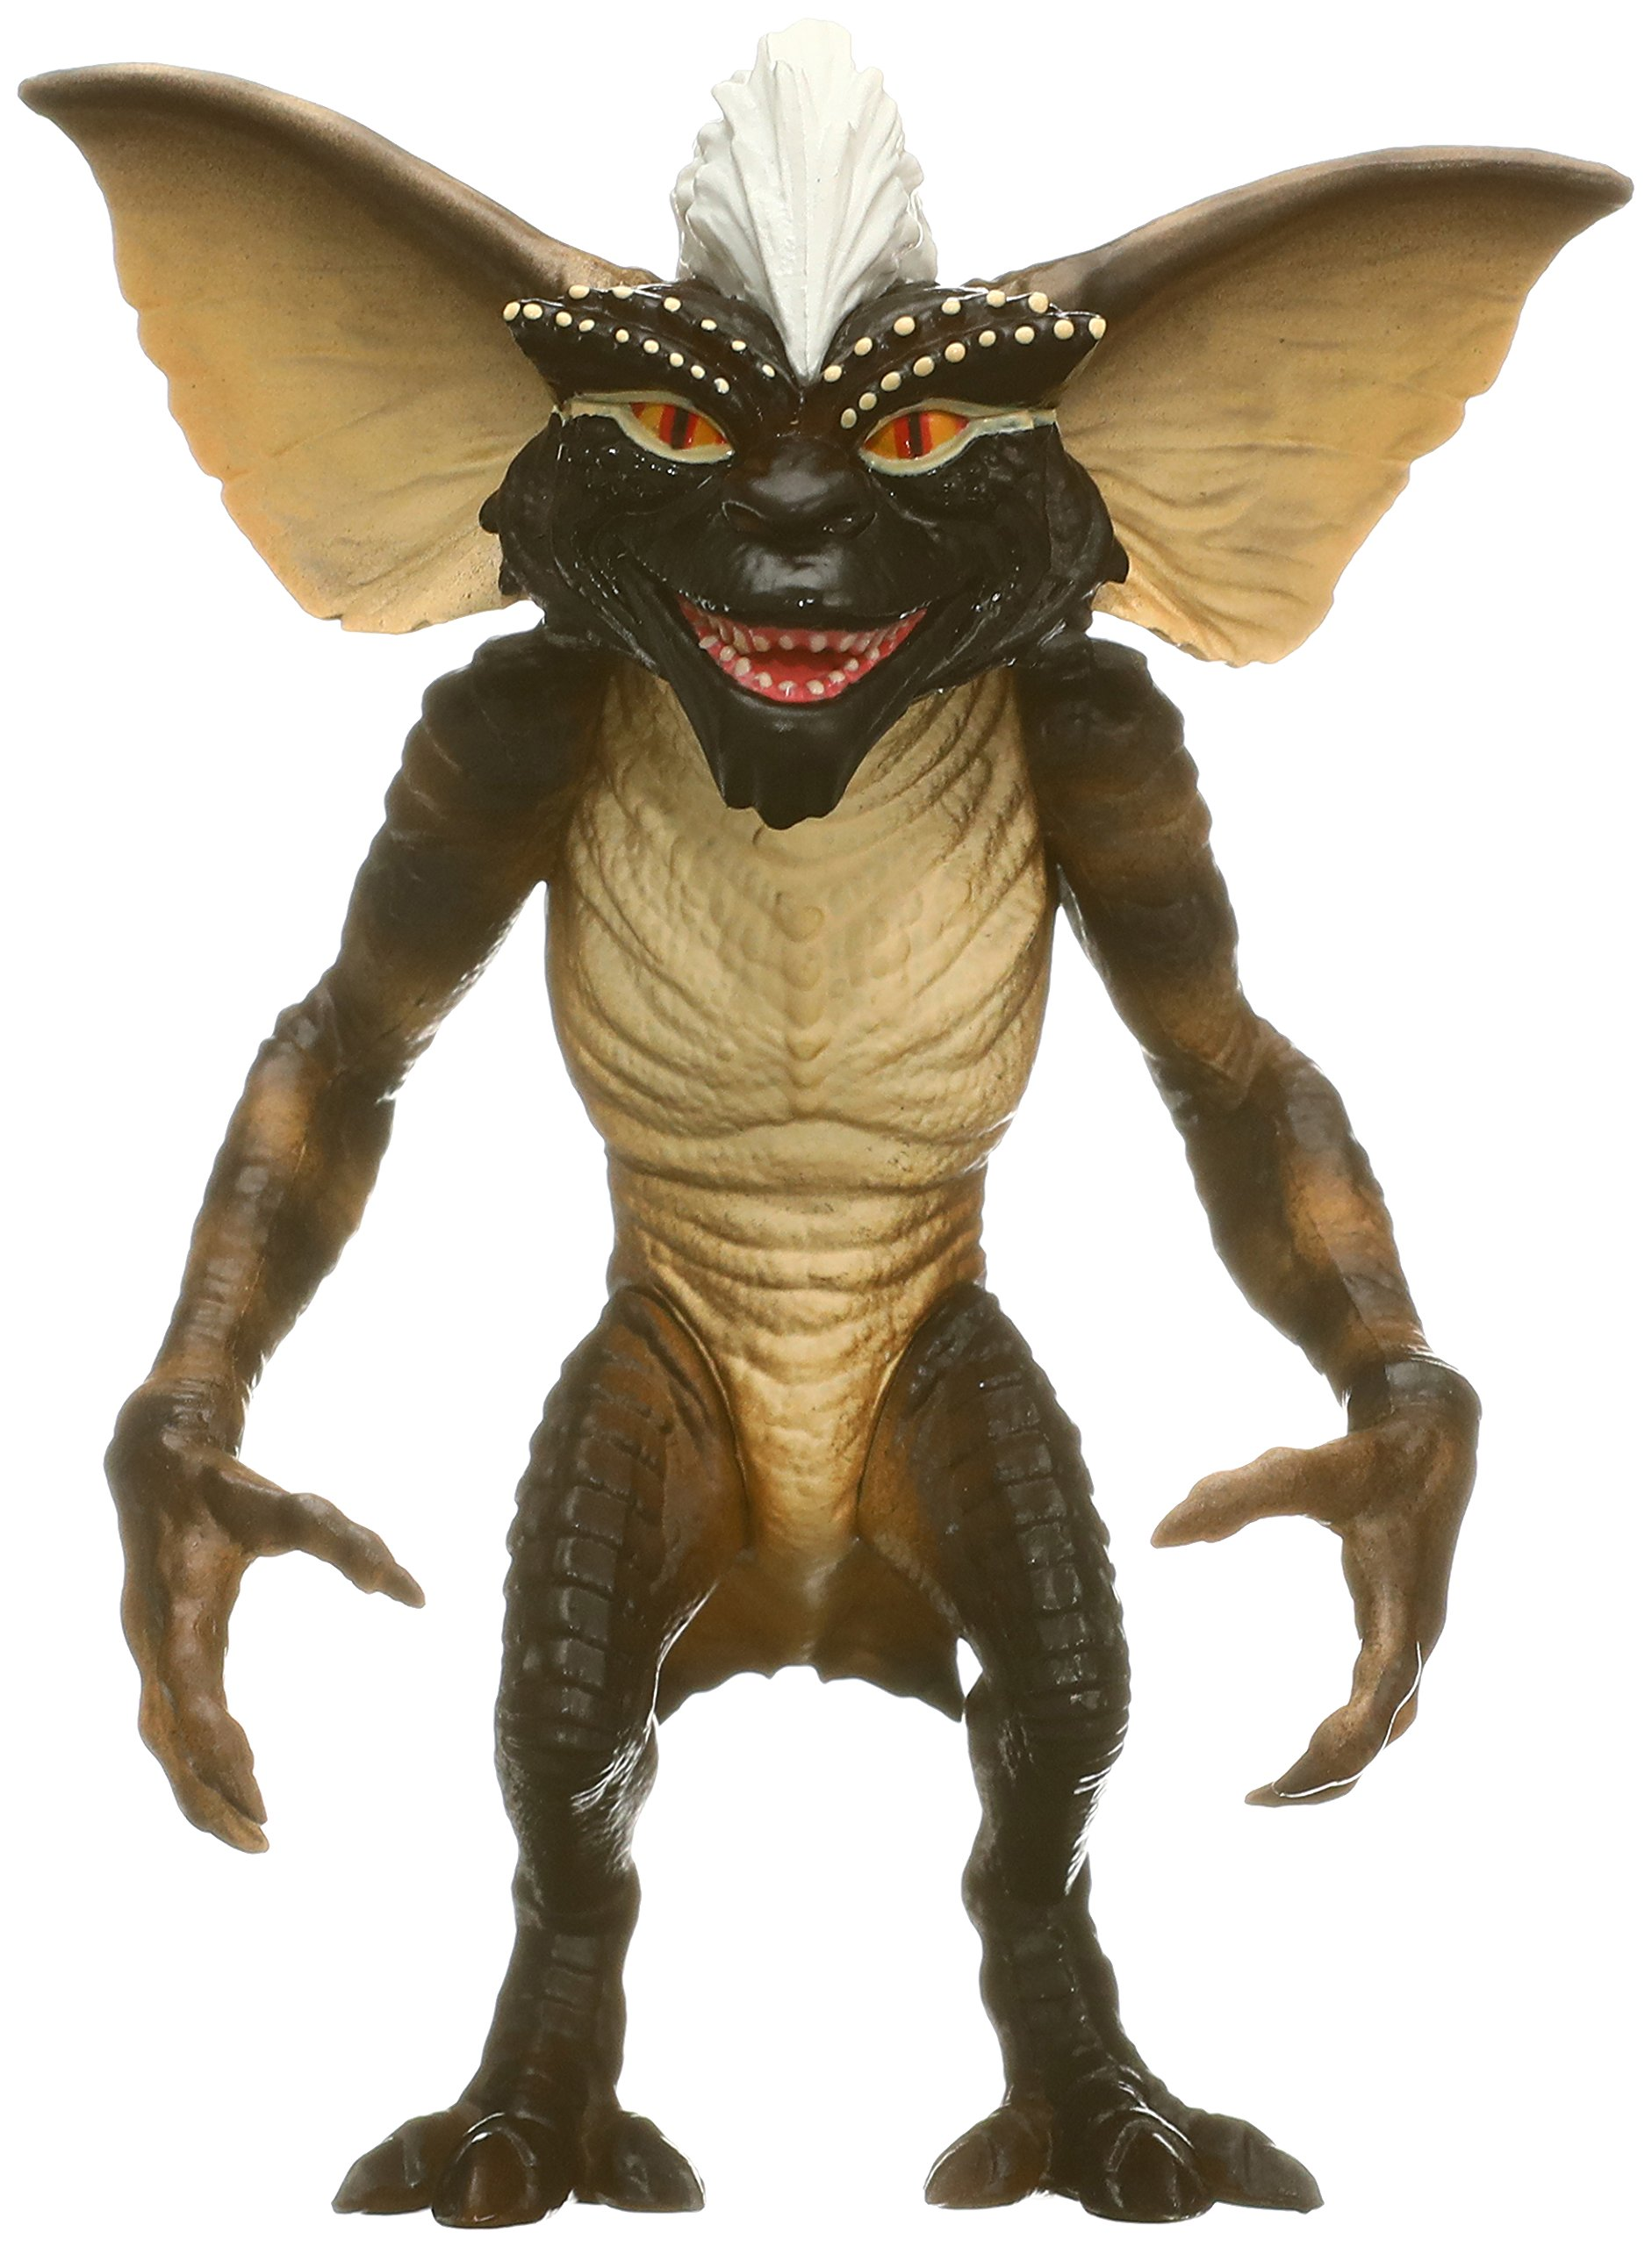 Medicom Gremlins Stripe Ultra Detail Action Figure Amazon Com Au Toys Games Possibly from middle english gremly (terrible) (compare old english gremman, gremian (to provoke; medicom gremlins stripe ultra detail action figure